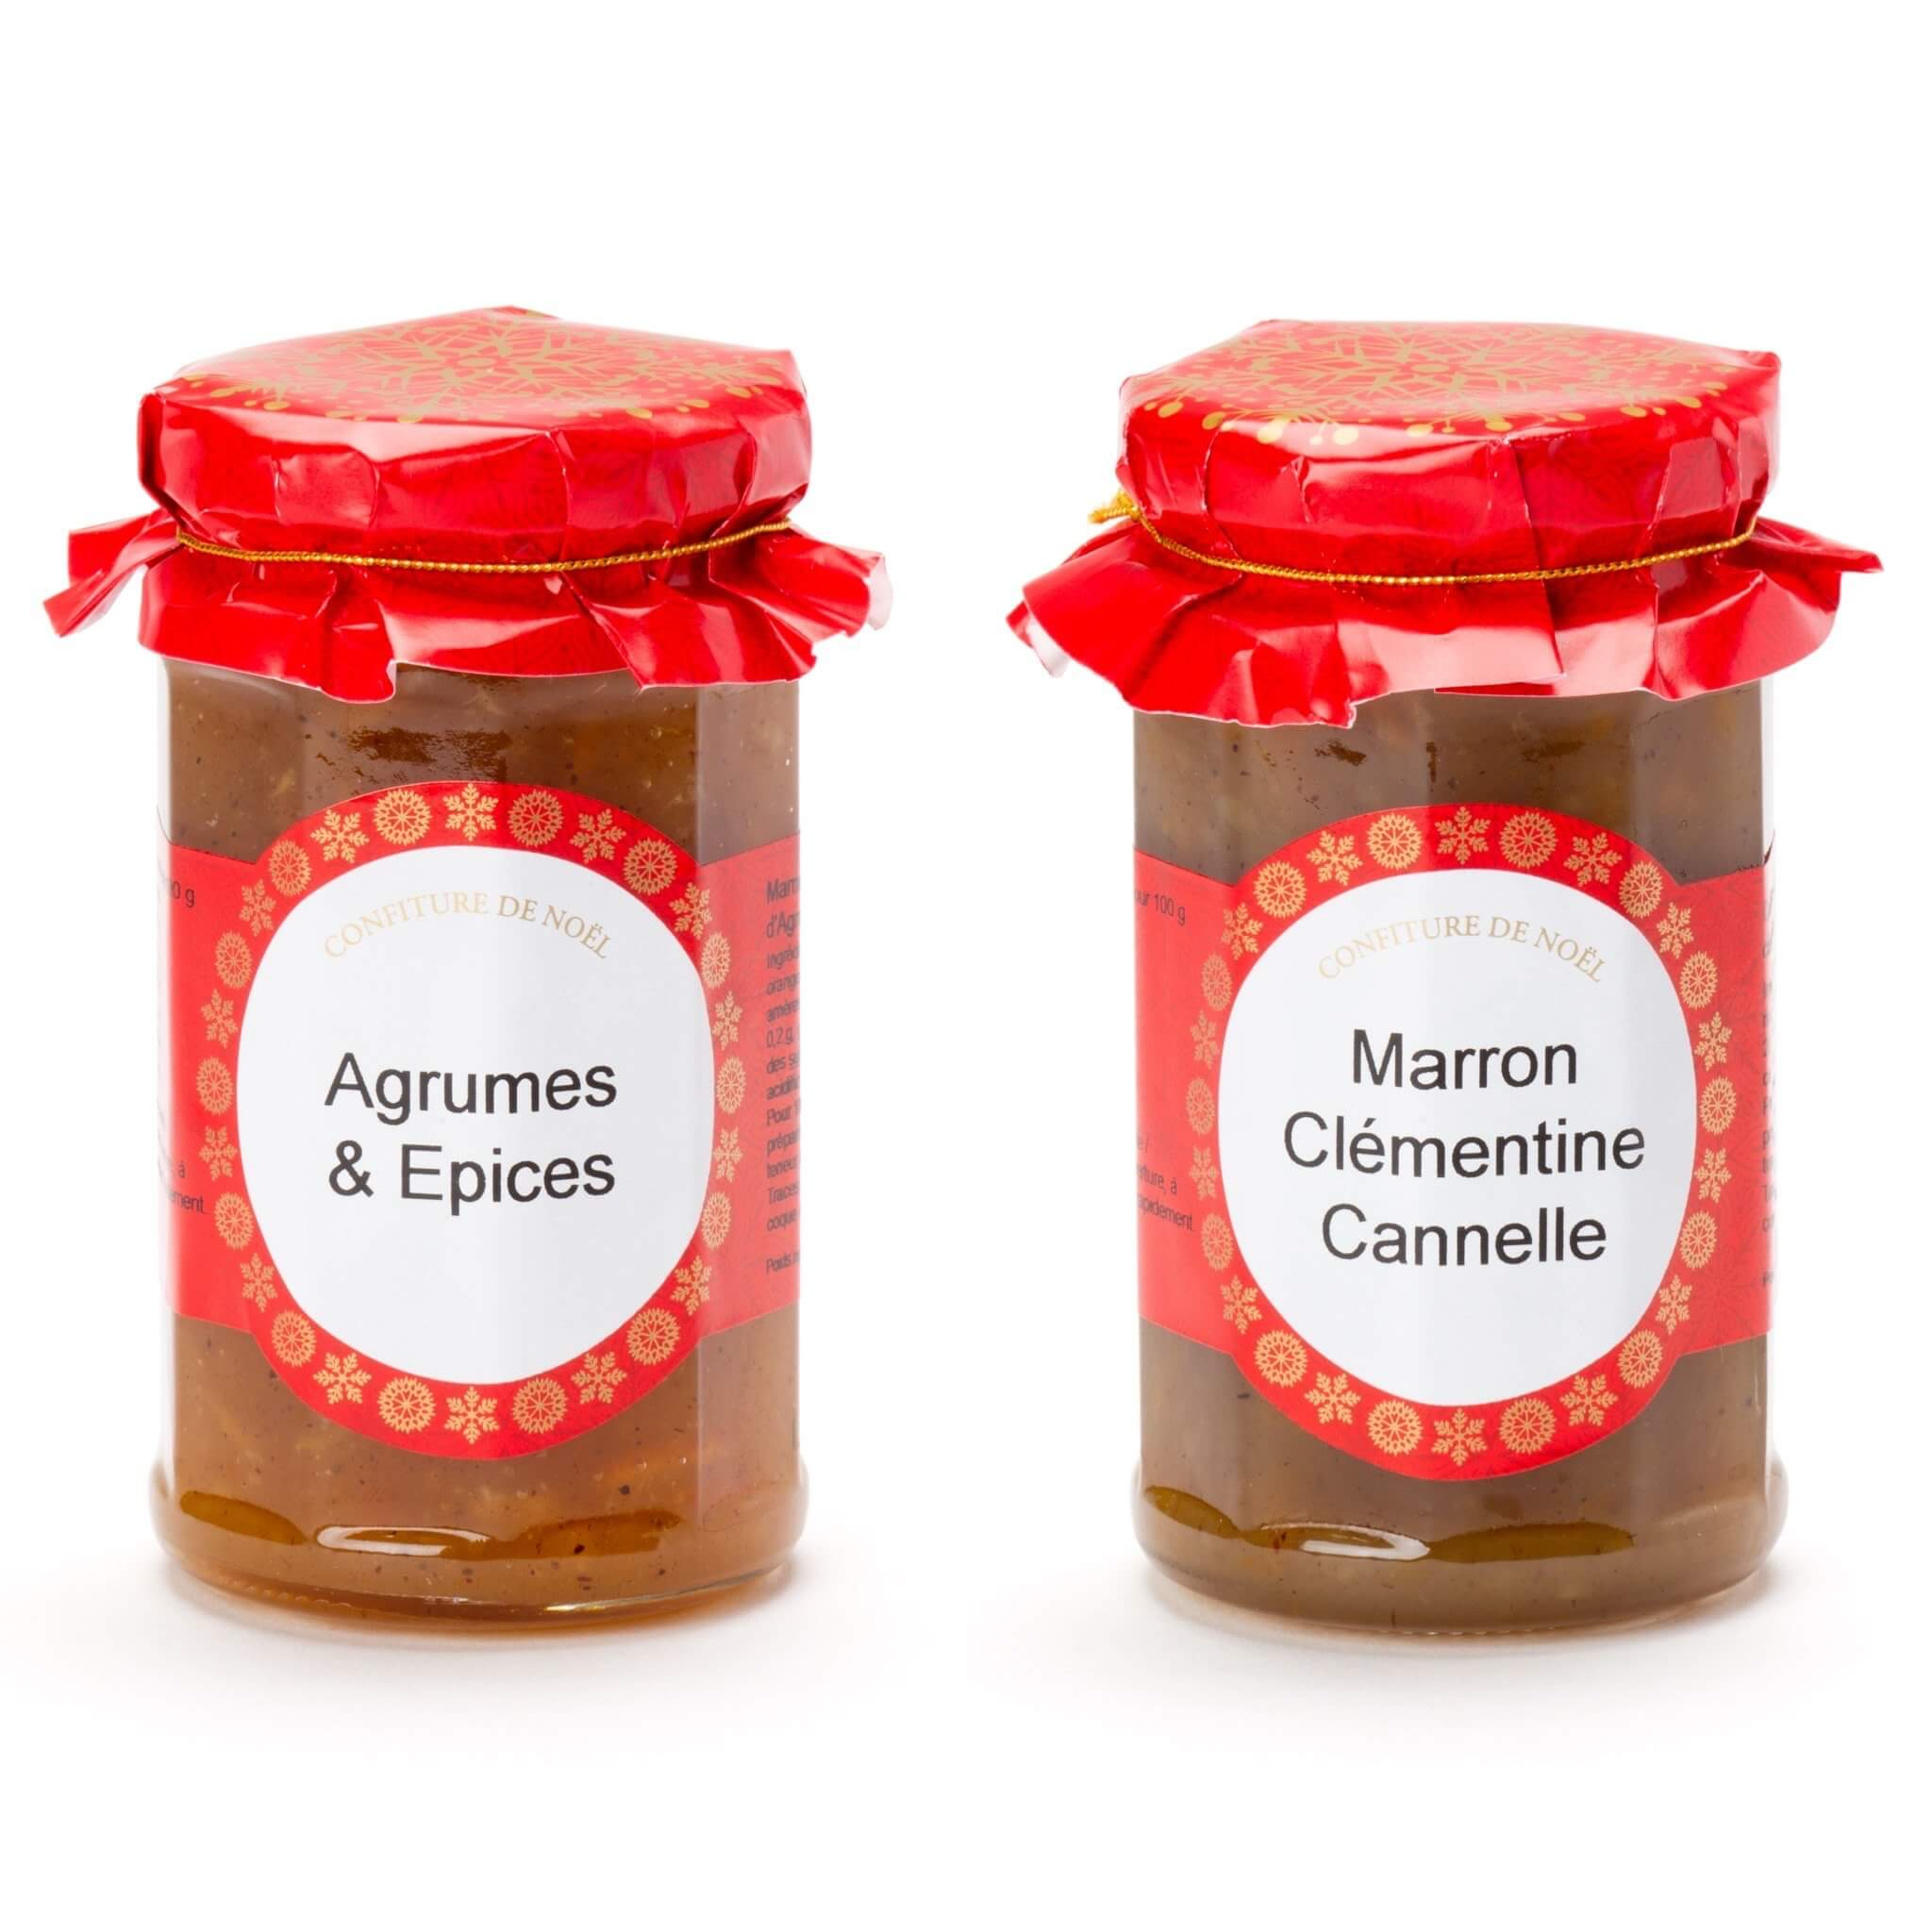 Christmas marmalade and jam by Andresy Confitures